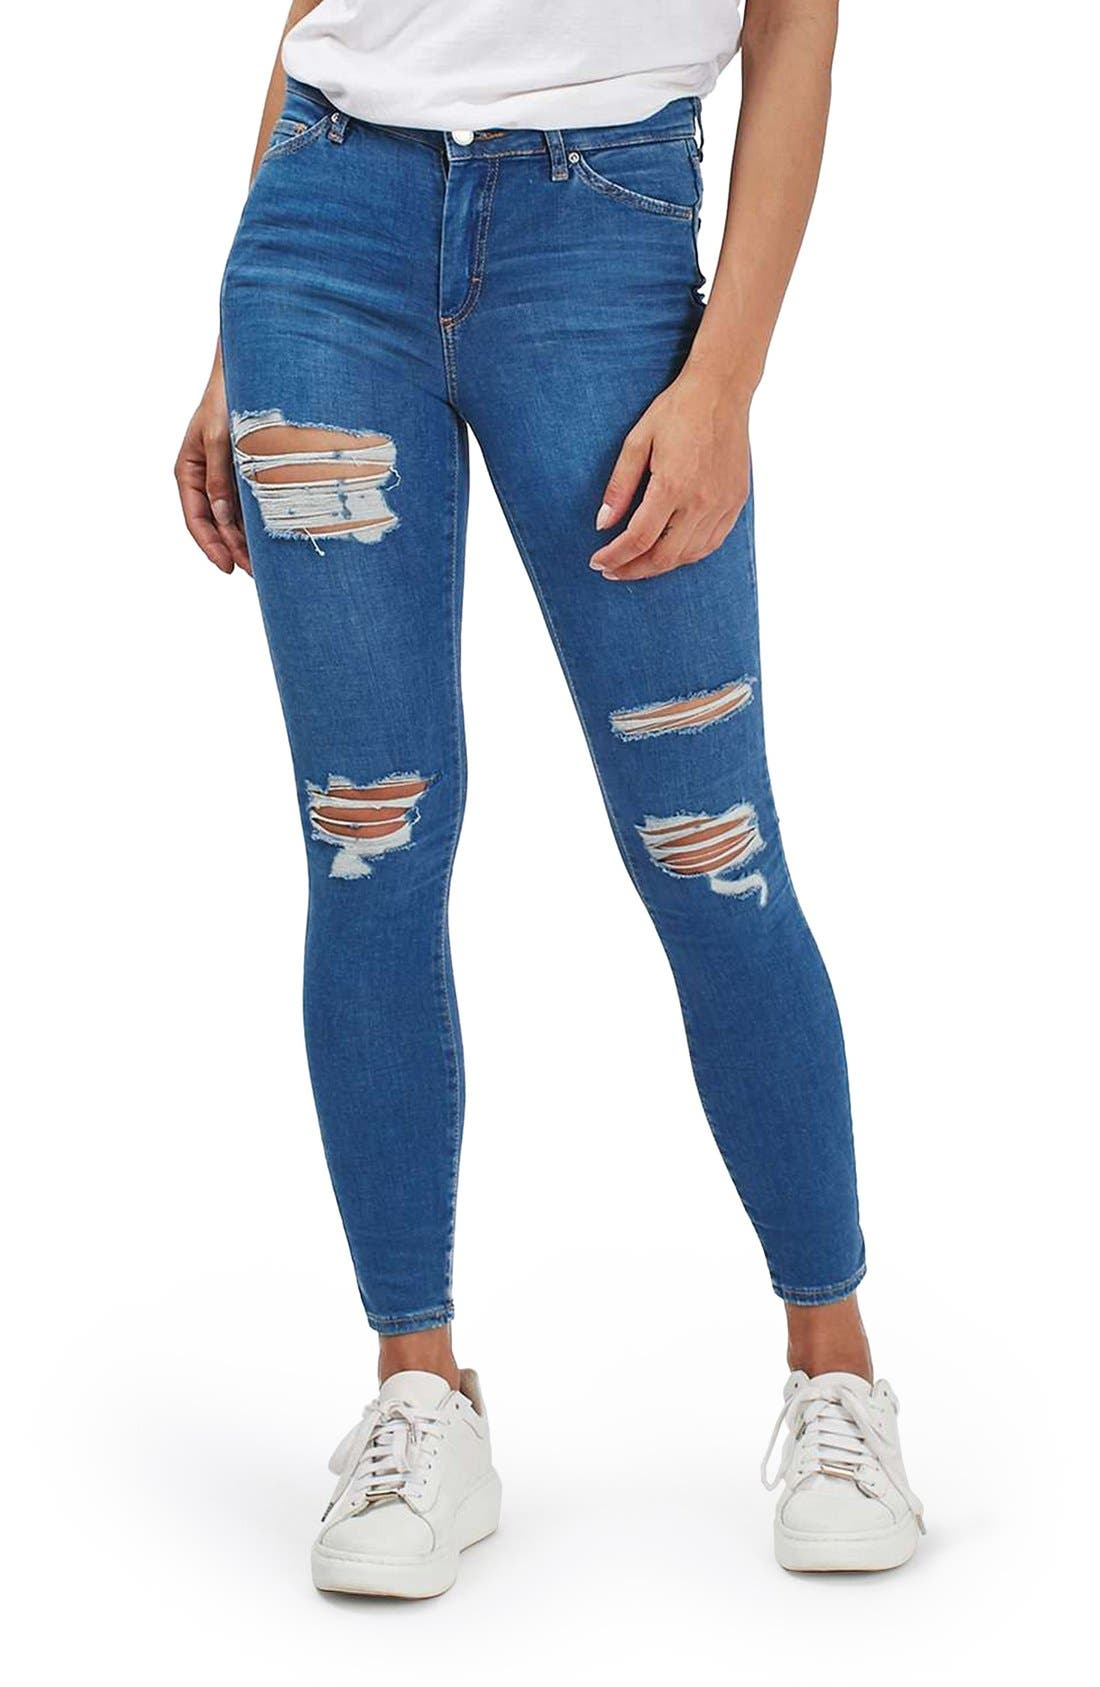 TOPSHOP, Moto Leigh Super Ripped Ankle Skinny Jeans, Main thumbnail 1, color, 400